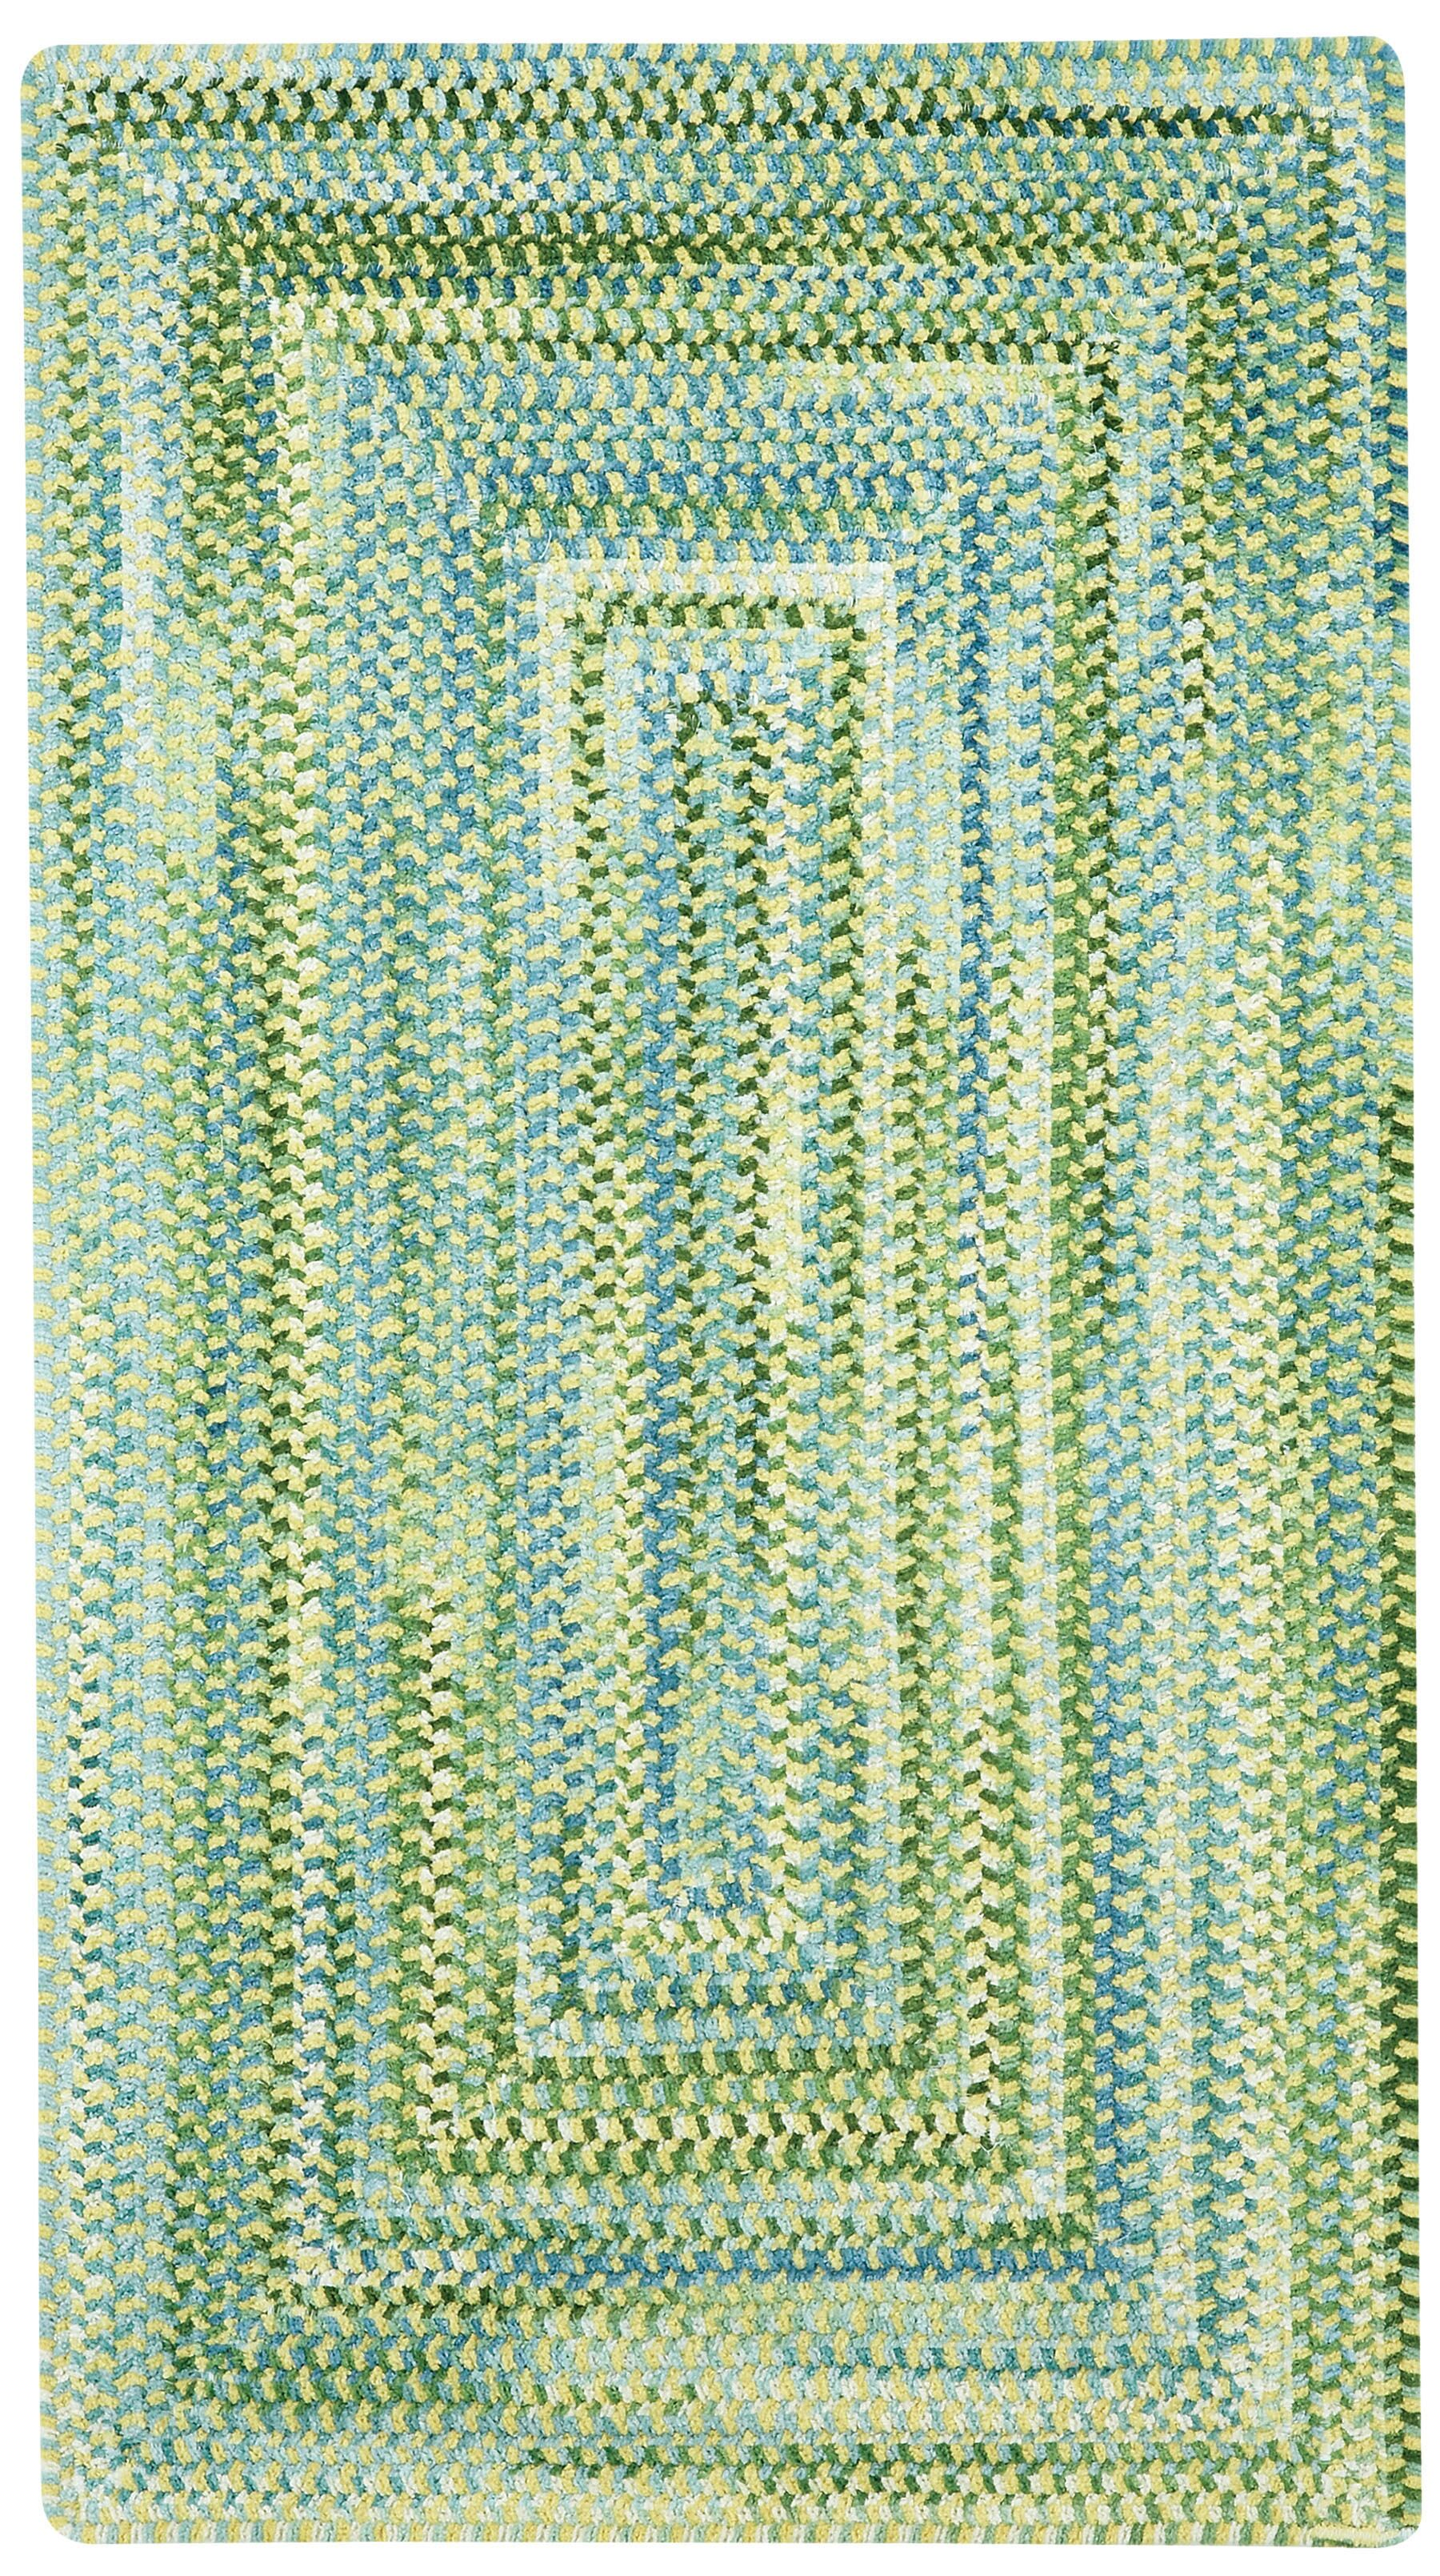 Celise Green/White Area Rug Rug Size: Concentric 2' x 3'